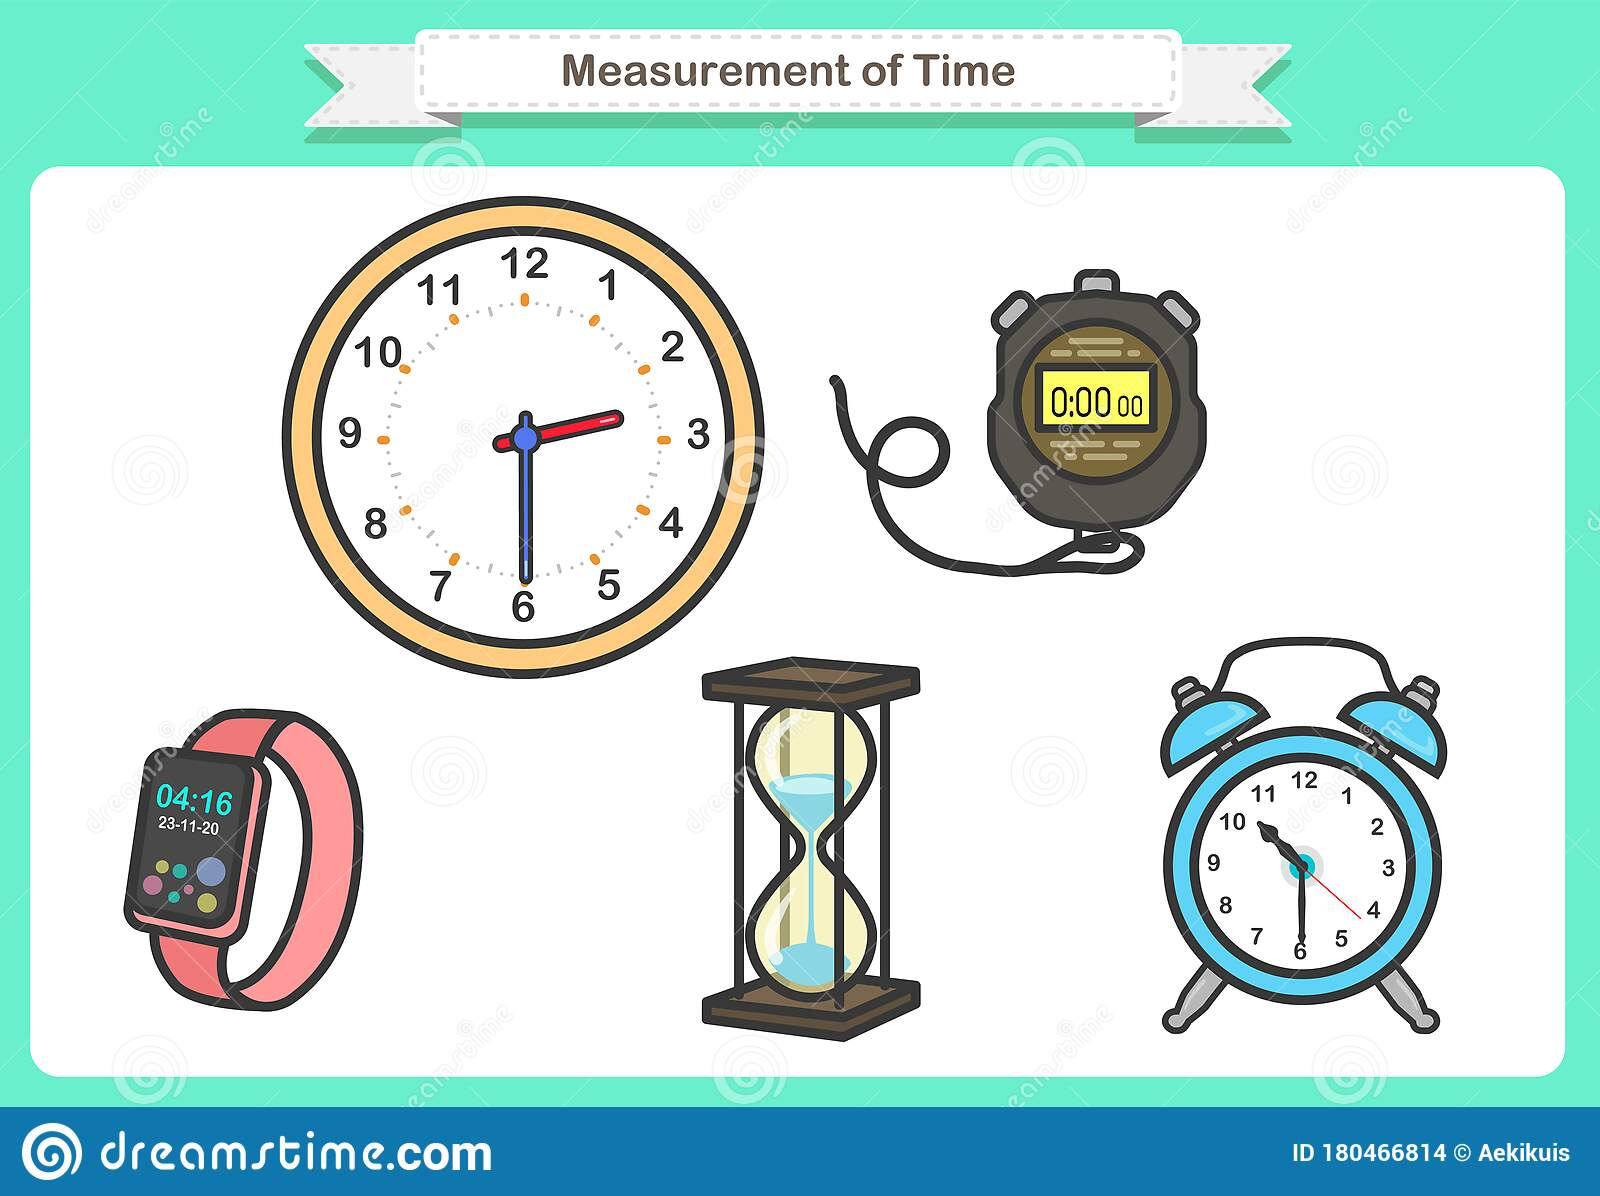 Measurement Of Time Objects Such As Alarm Clock Wrist